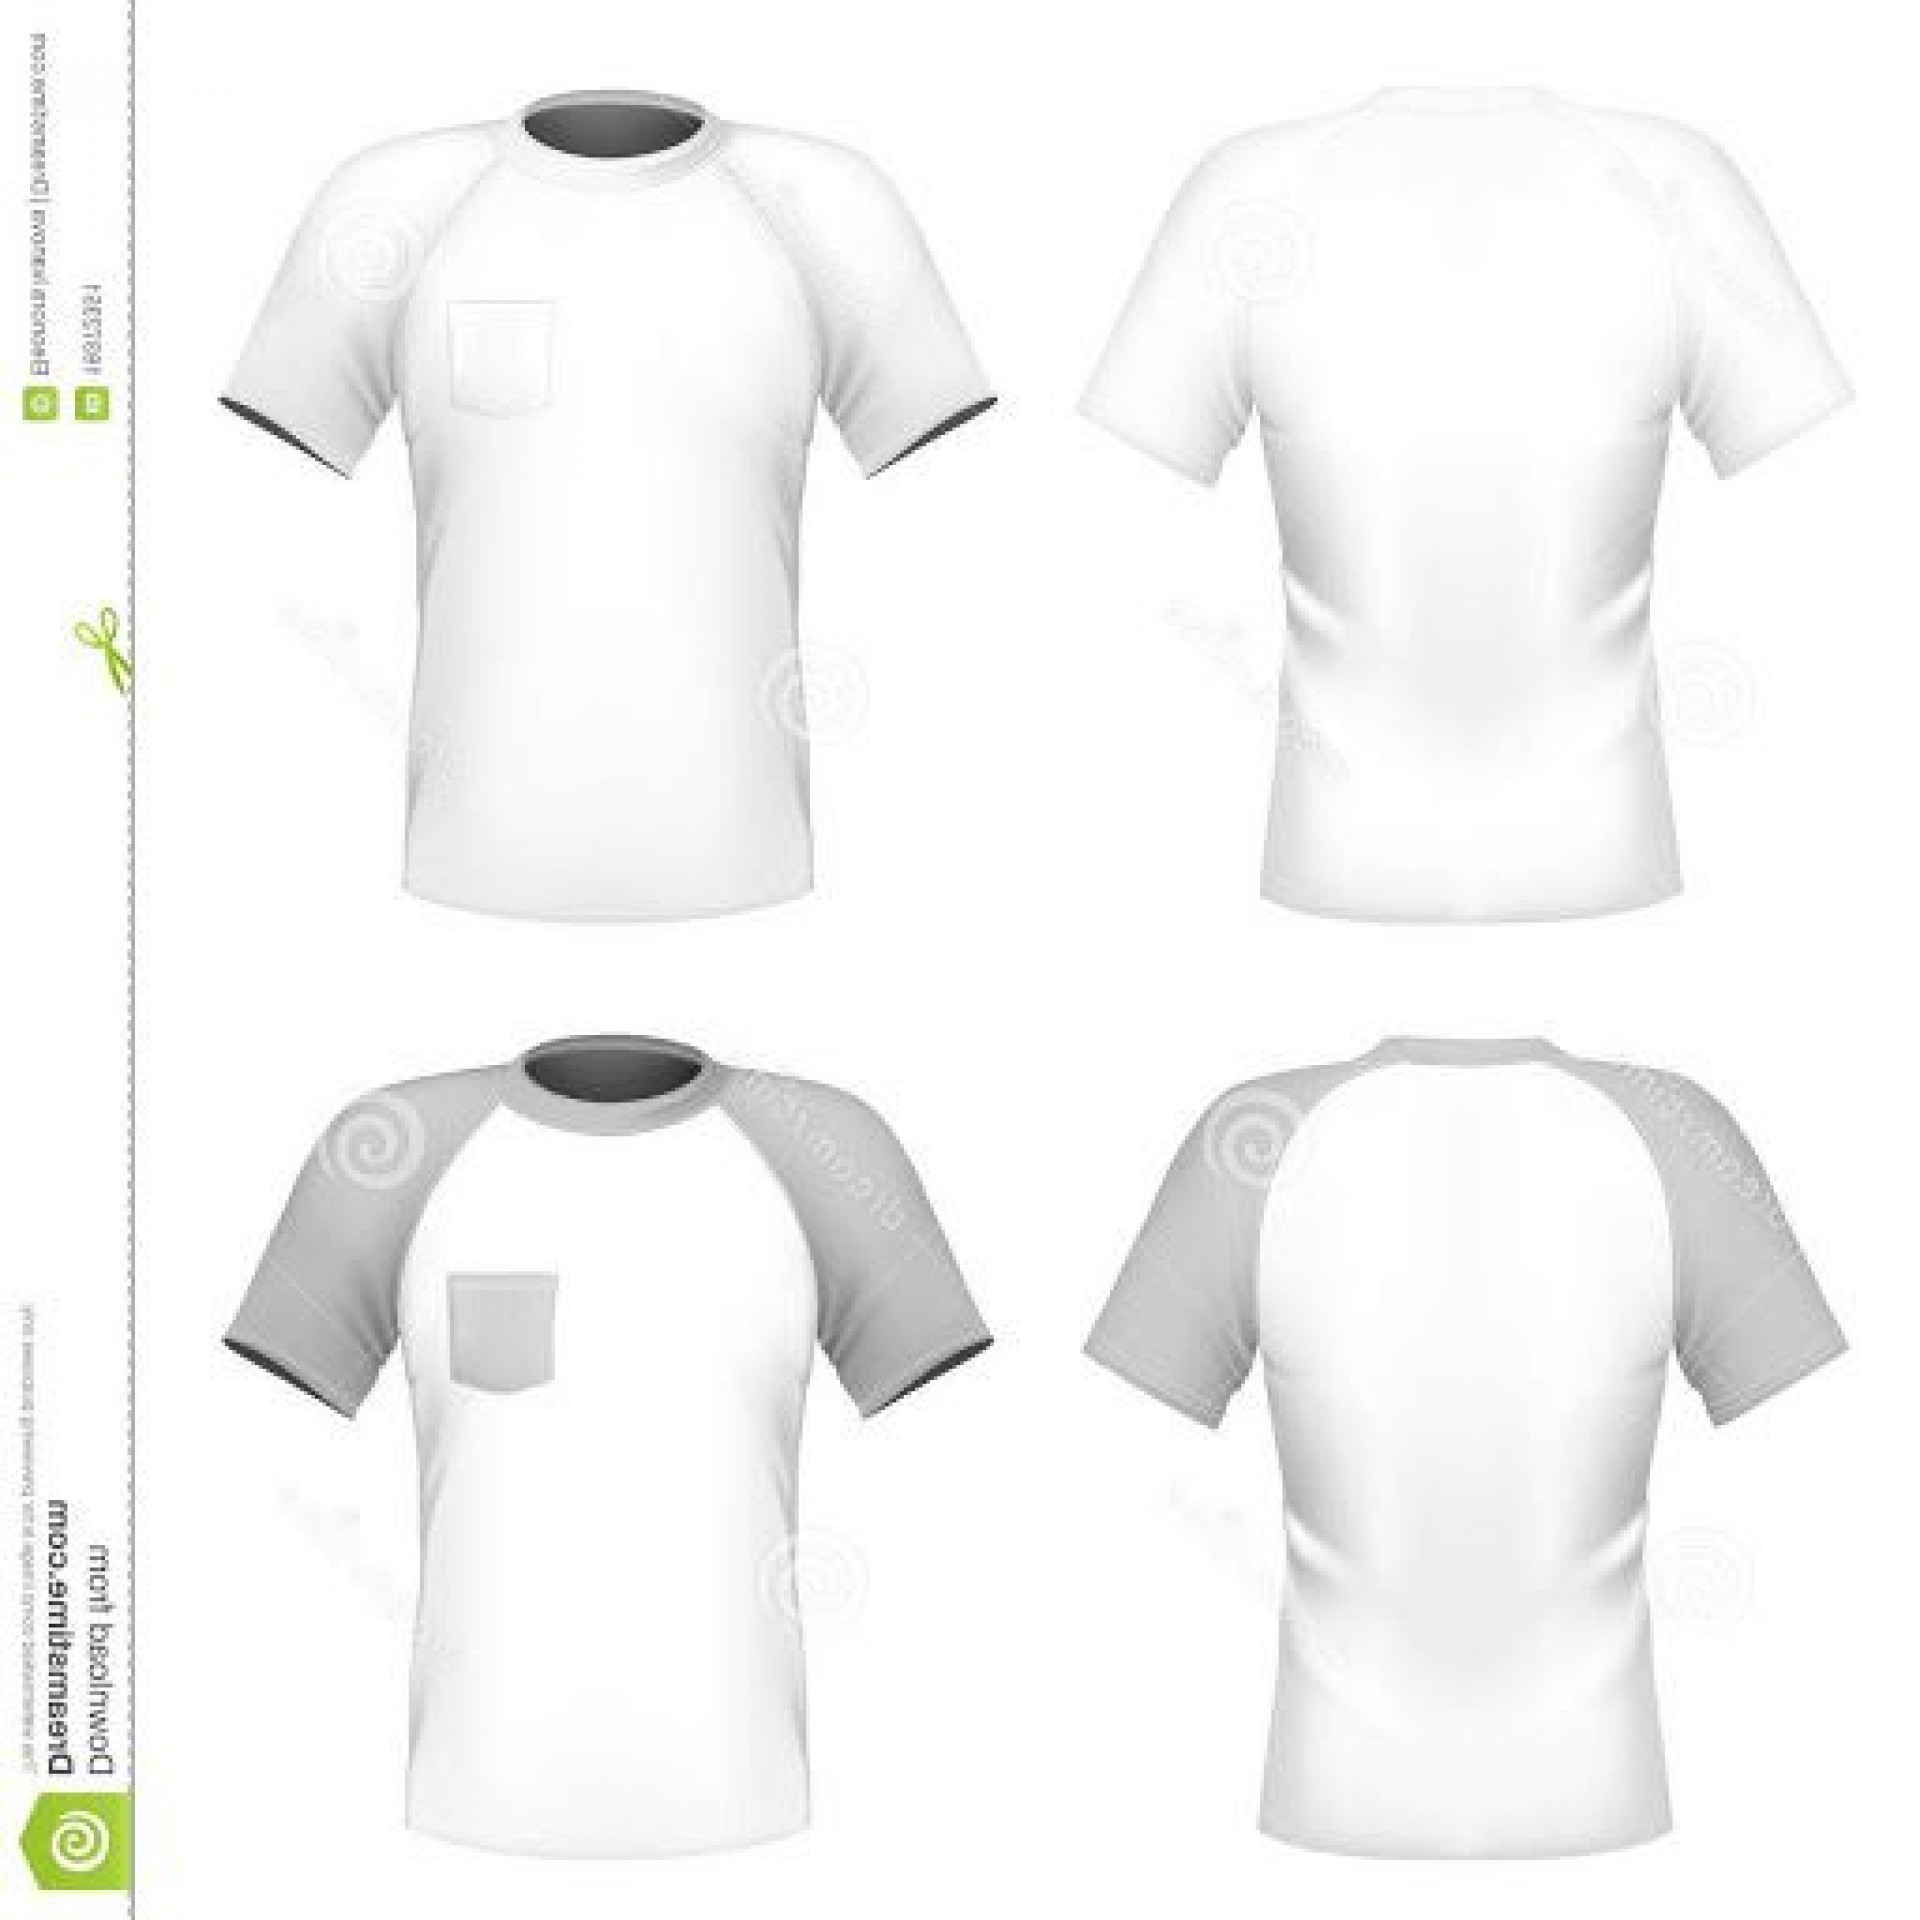 007 Formidable T Shirt Design Template Free Picture  Psd Download1920